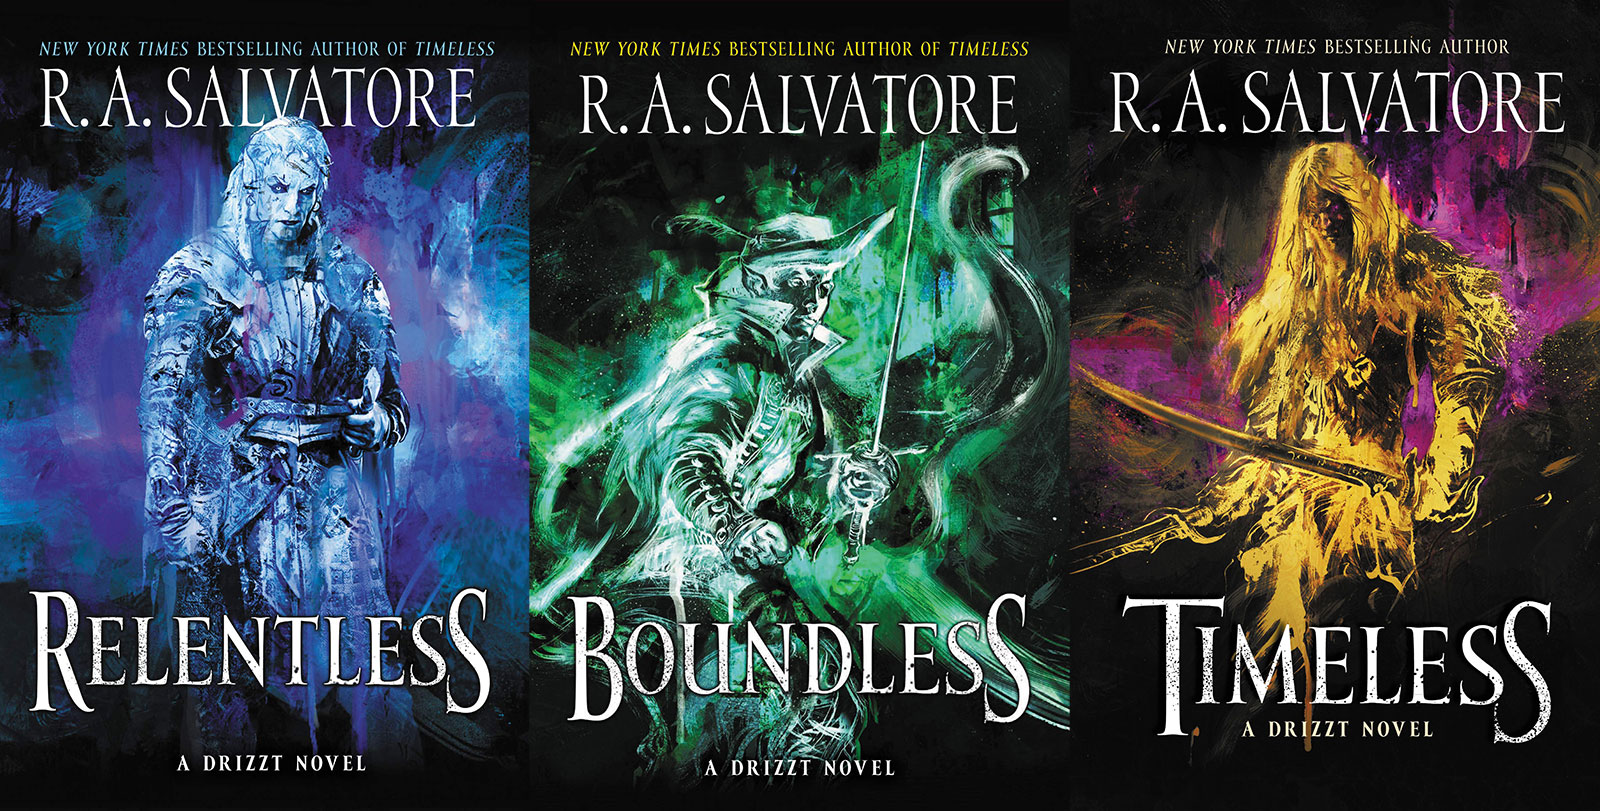 Relentless and Boundless and Timeless Drizzt Novels by R. A. Salvatore in Generations Trilogy Covers Jarlaxle Baenre Zaknafein Do'Urden